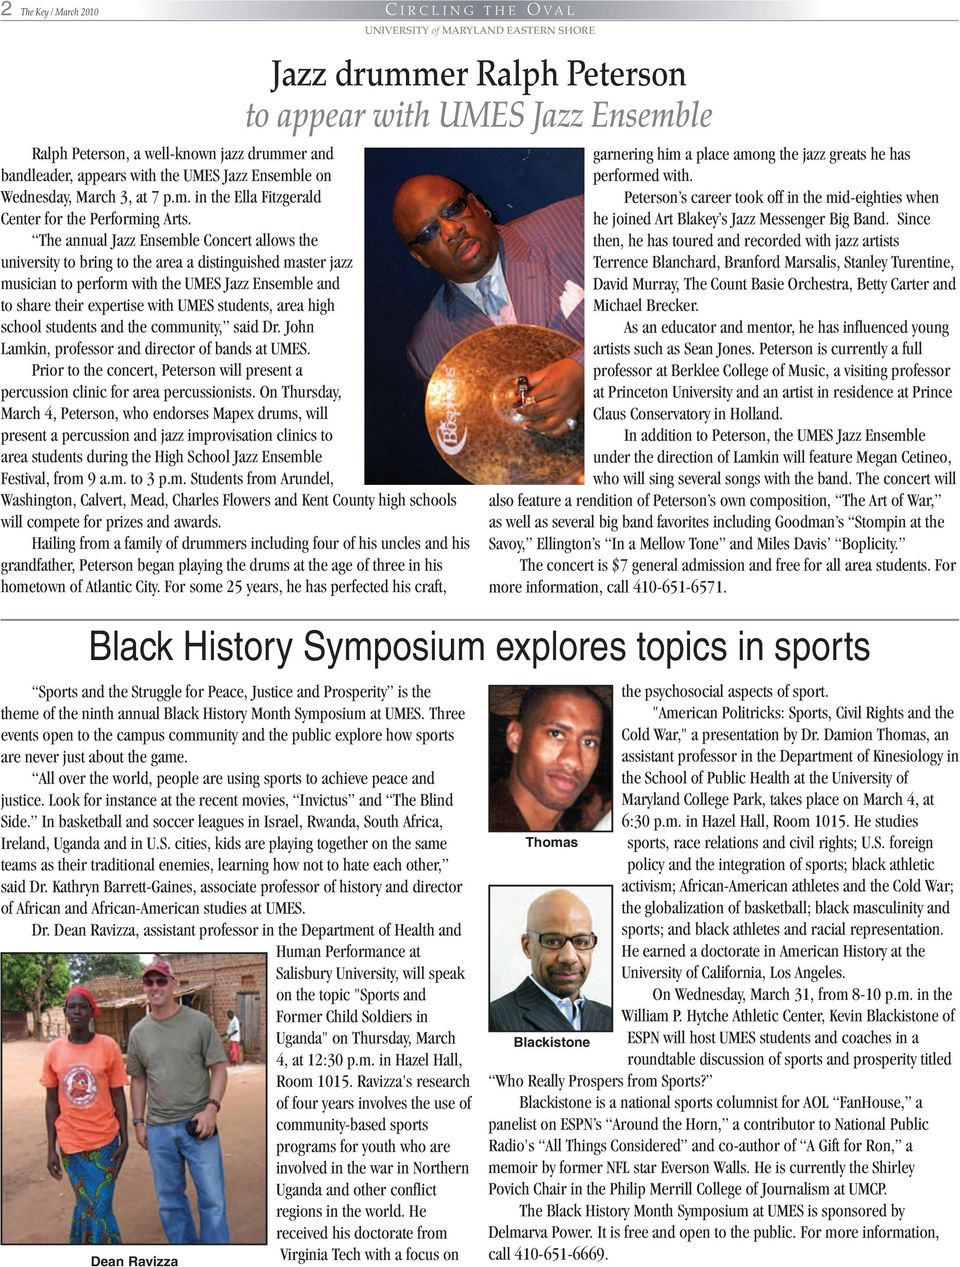 students, area high school students and the community, said Dr. John Lamkin, professor and director of bands at UMES.